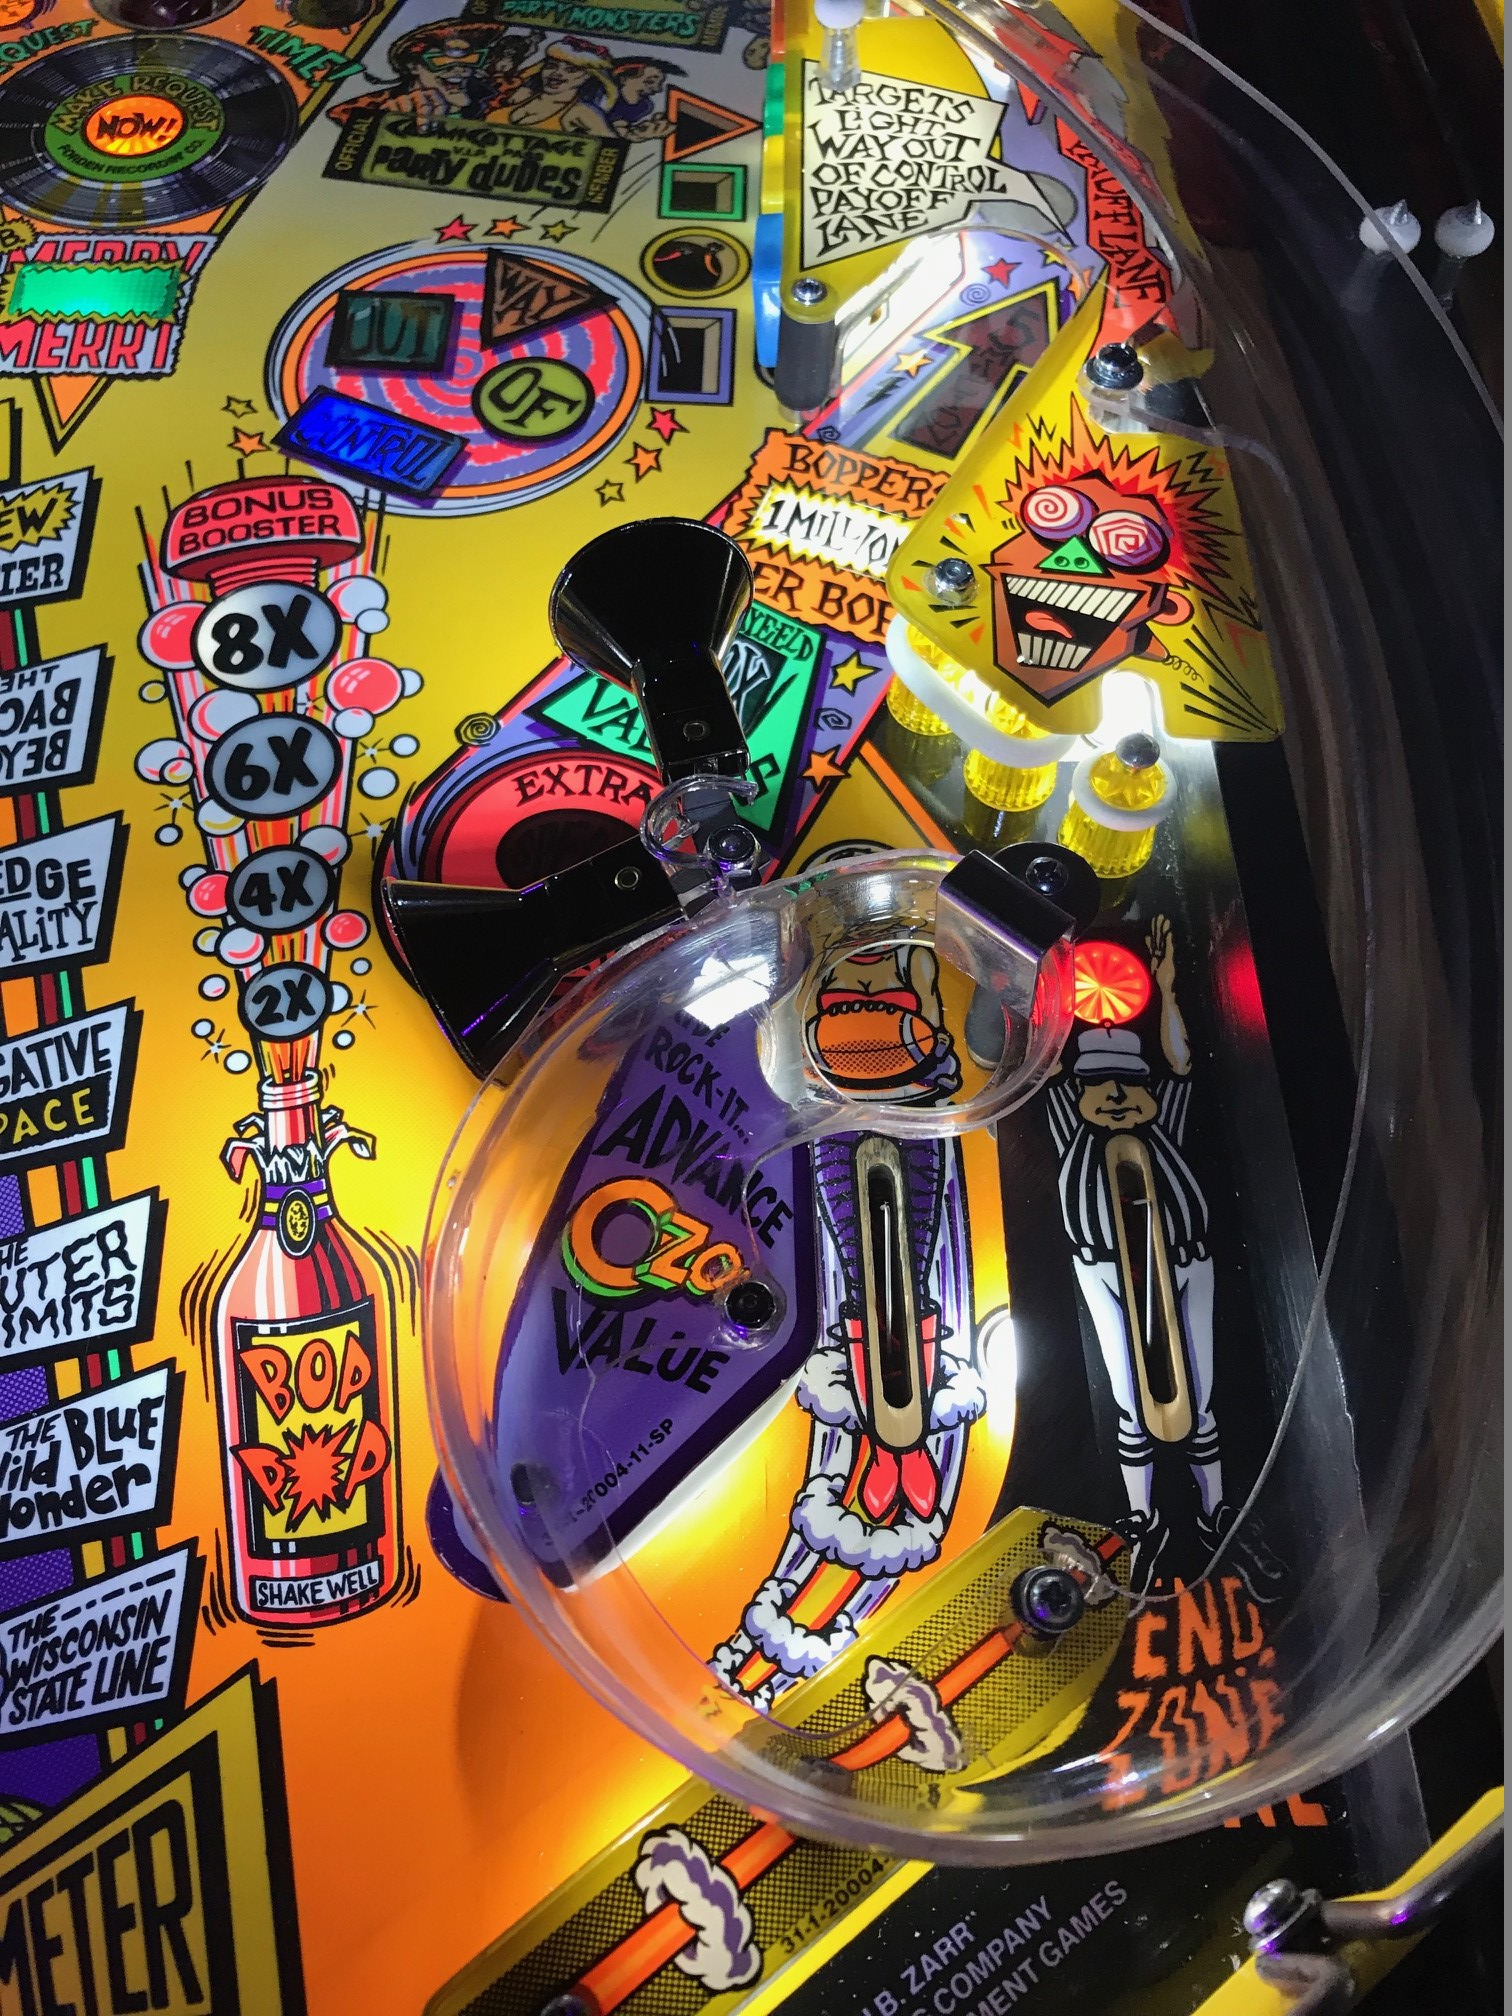 High Quality Party Zone Pinball Ultimate LED Kit Pinball LEDs